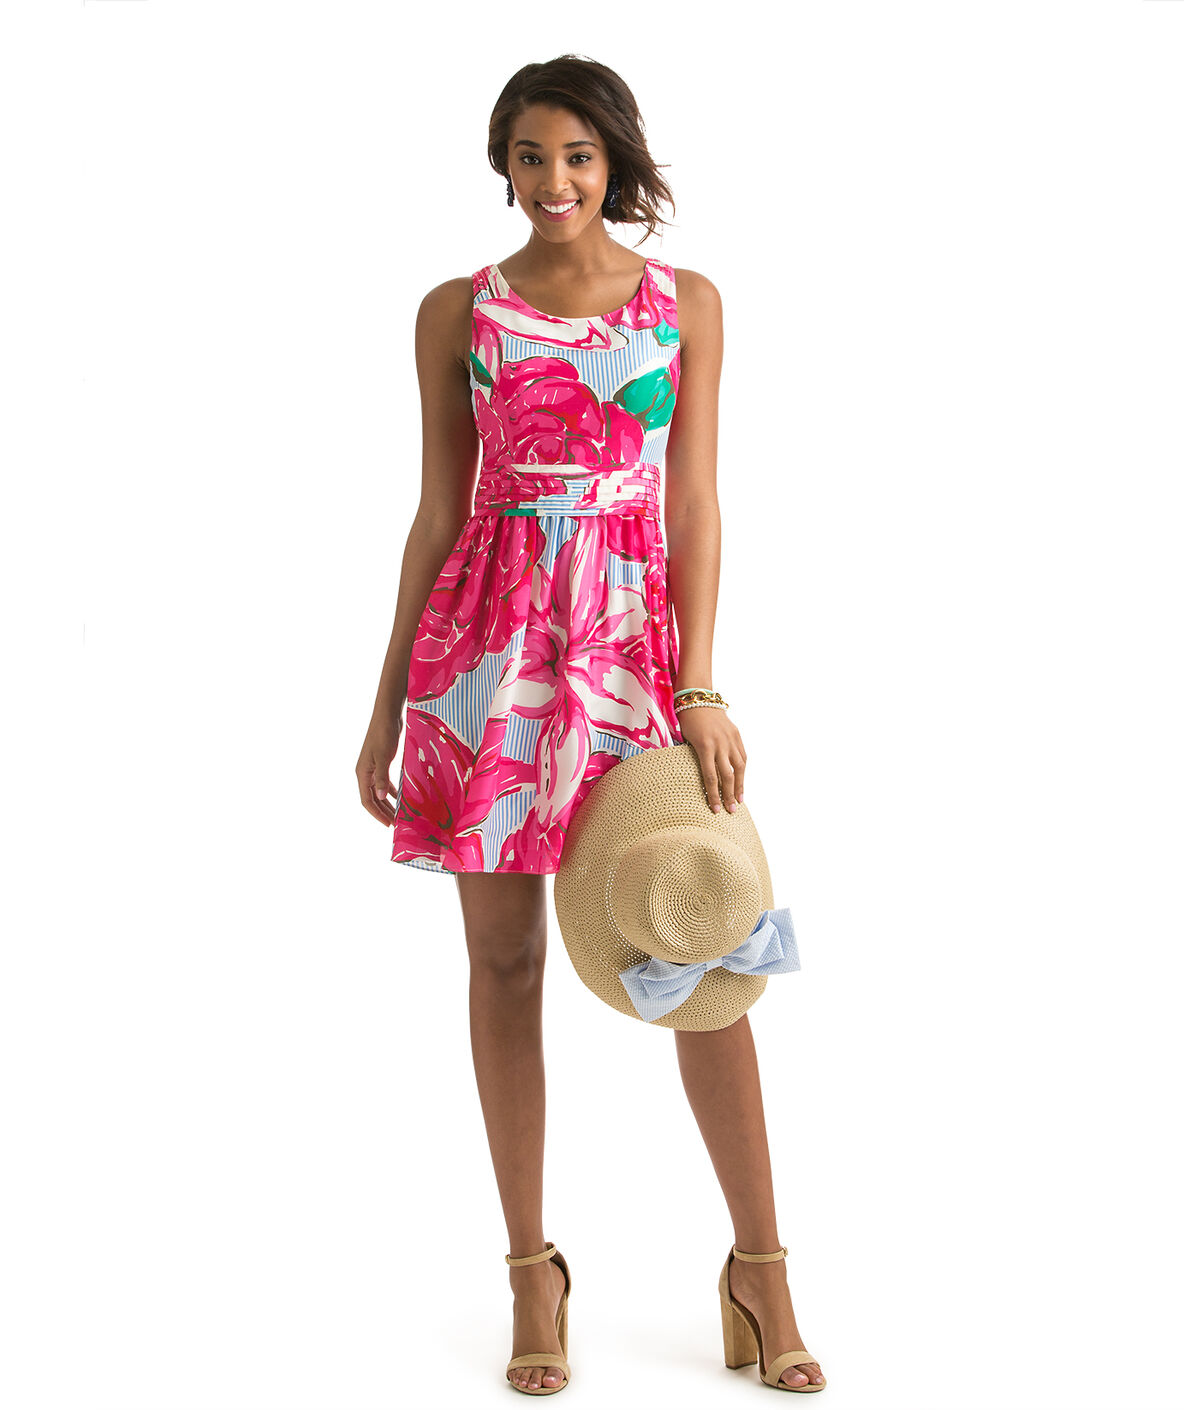 12 Cool Kentucky Derby Inspired Home Decor Ideas: Shop Run For The Roses Printed Derby Dress At Vineyard Vines